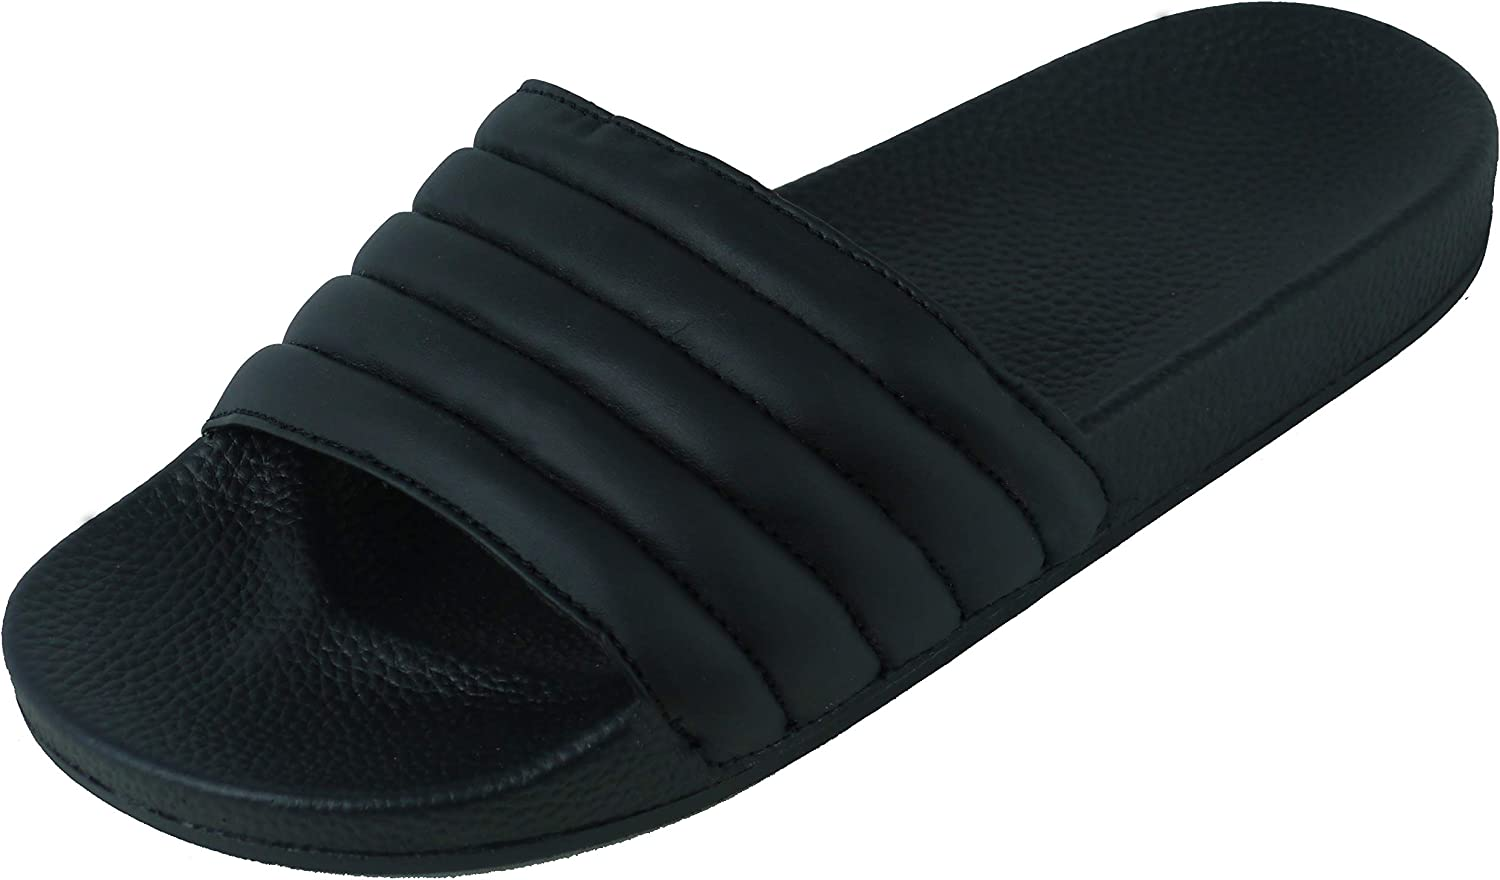 BeMeesh Womens Ladies Quilted Puffa Fabric Sliders Sandals Mules